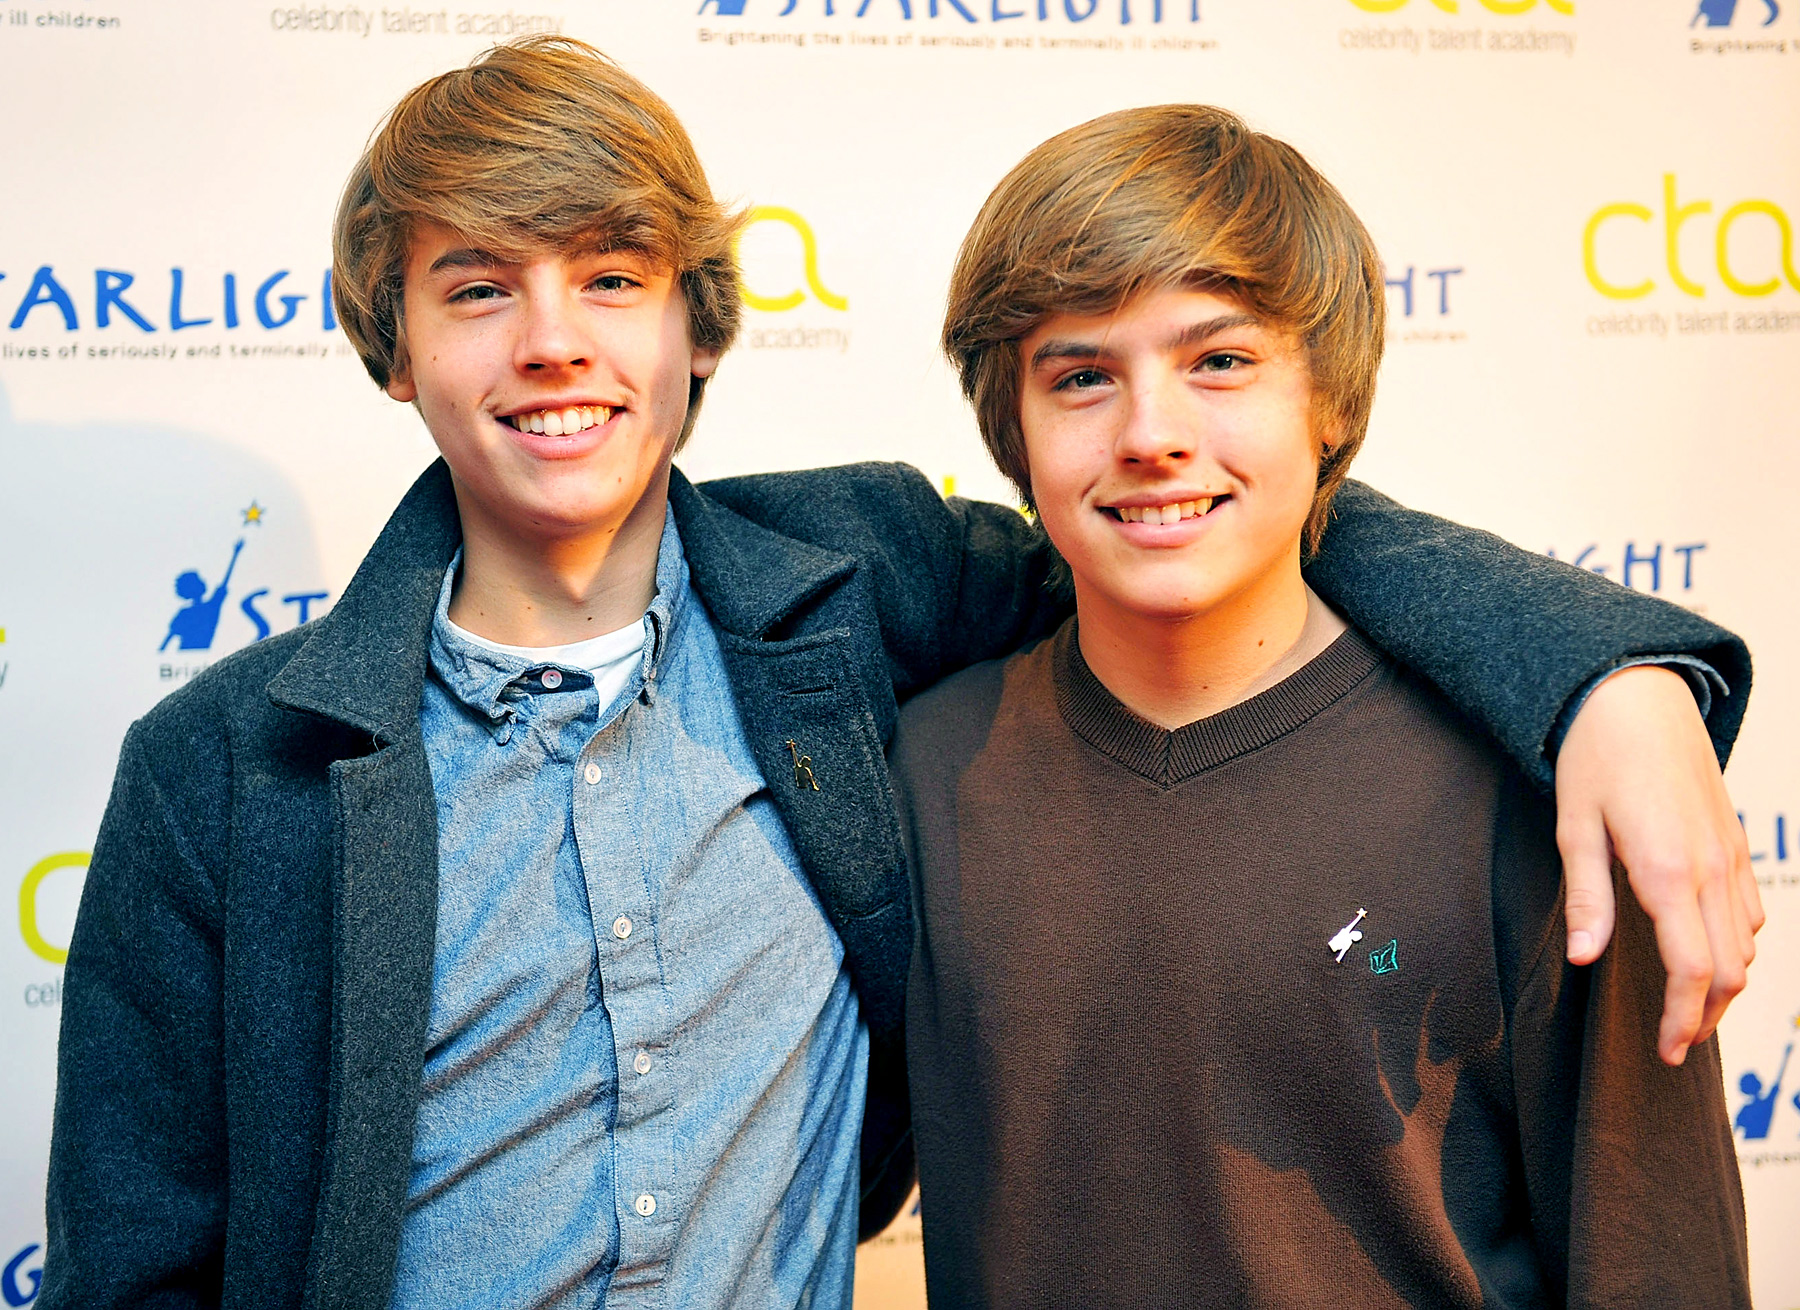 These twin brothers first made it big when they starred opposite Adam Sandler in 1999 hit comedy Big Daddy. The identical twins went on to star on Disney Channel's Suite Life of Zach & Cody and spinoff Suite Life on Deck from 2005 to 2011.